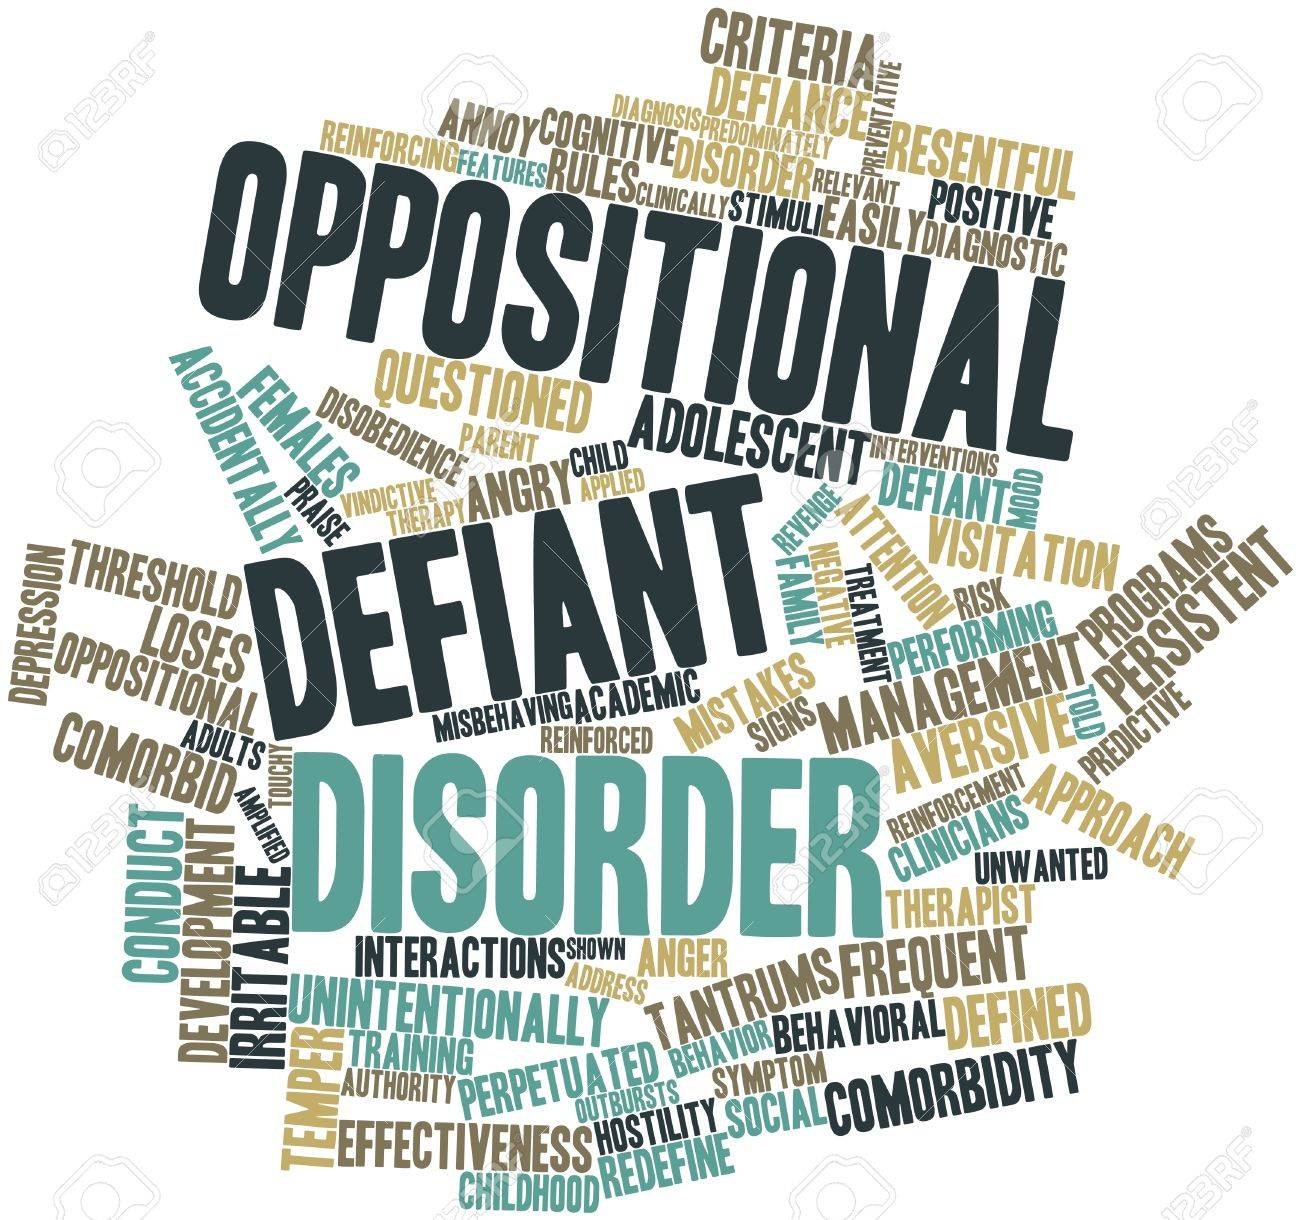 How to Deal with Oppositional Defiant Disorder